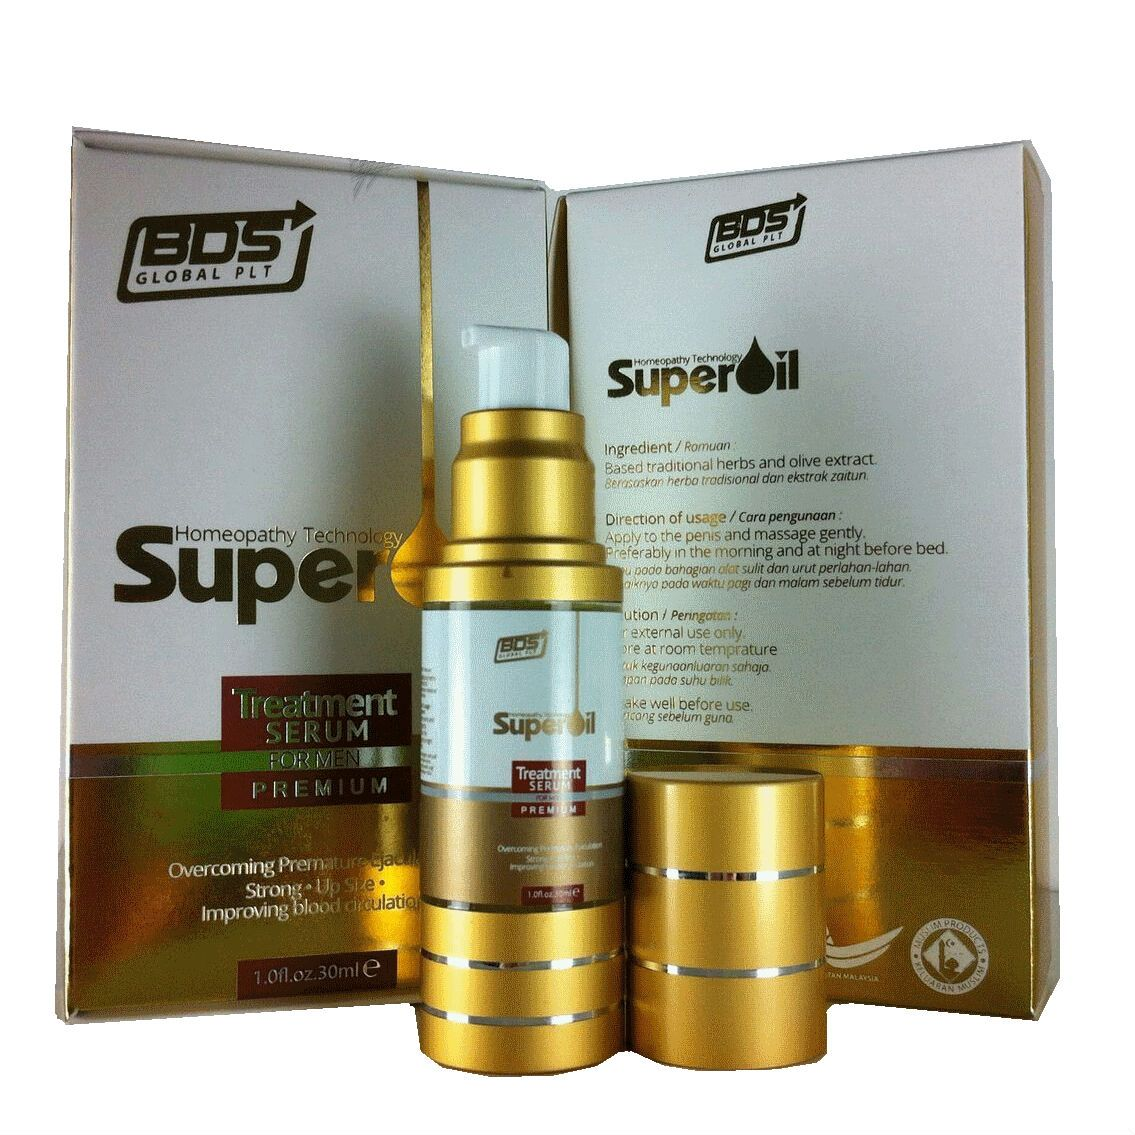 BDS Super Oil Treatment serum - www.batinmalaysia.com S37el1